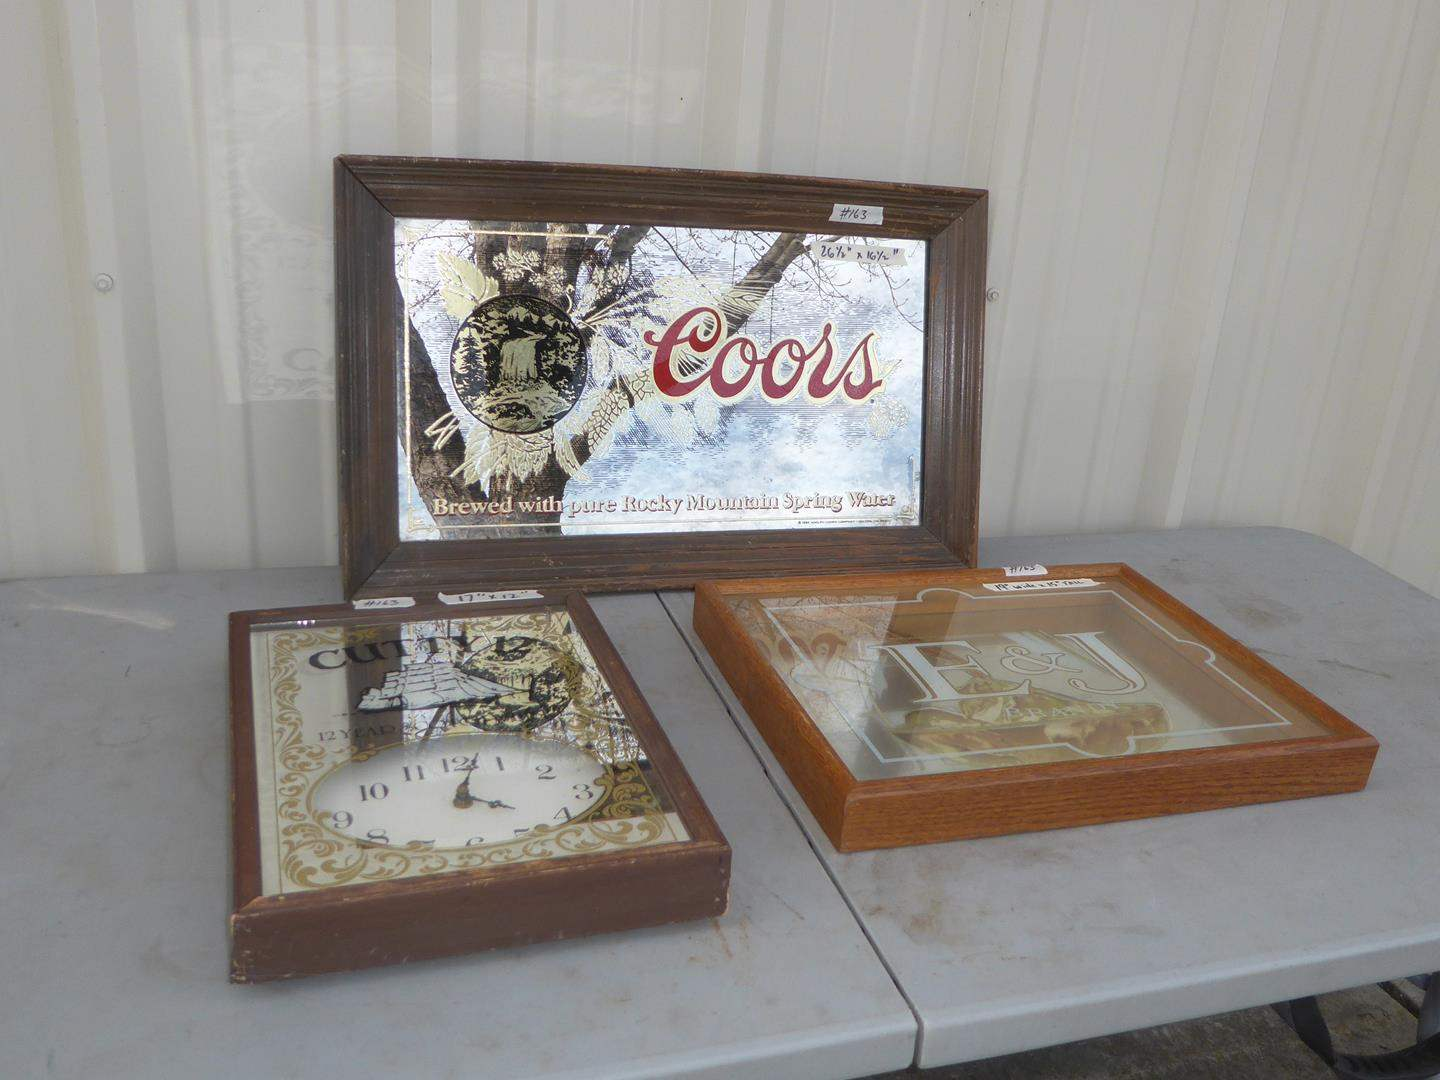 Lot # 163 - Cutty 12 Scotch Whiskey Advertising Clock, E & J Brandy Mirror & Coors Beer Mirror (main image)